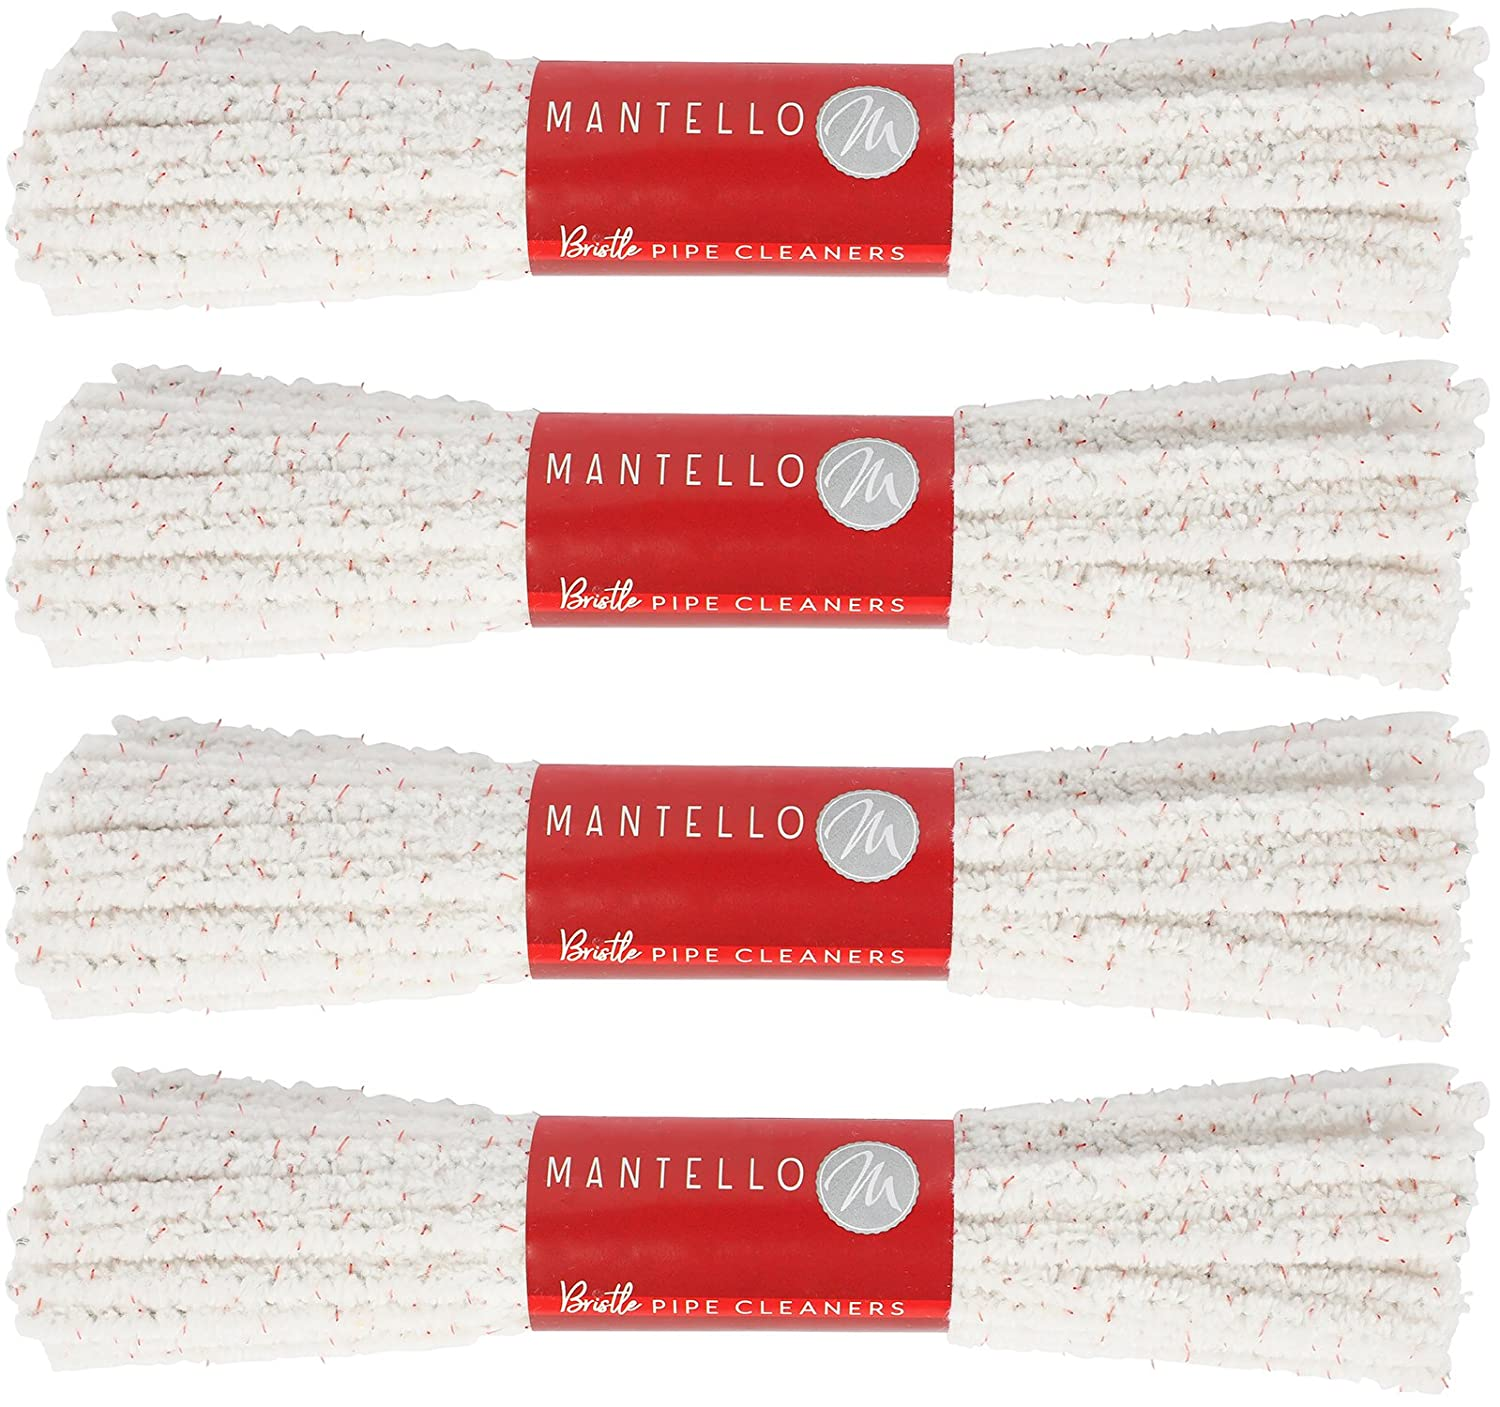 Mantello Pipe Cleaners Hard Bristle, 4 Bundles, 176 Count